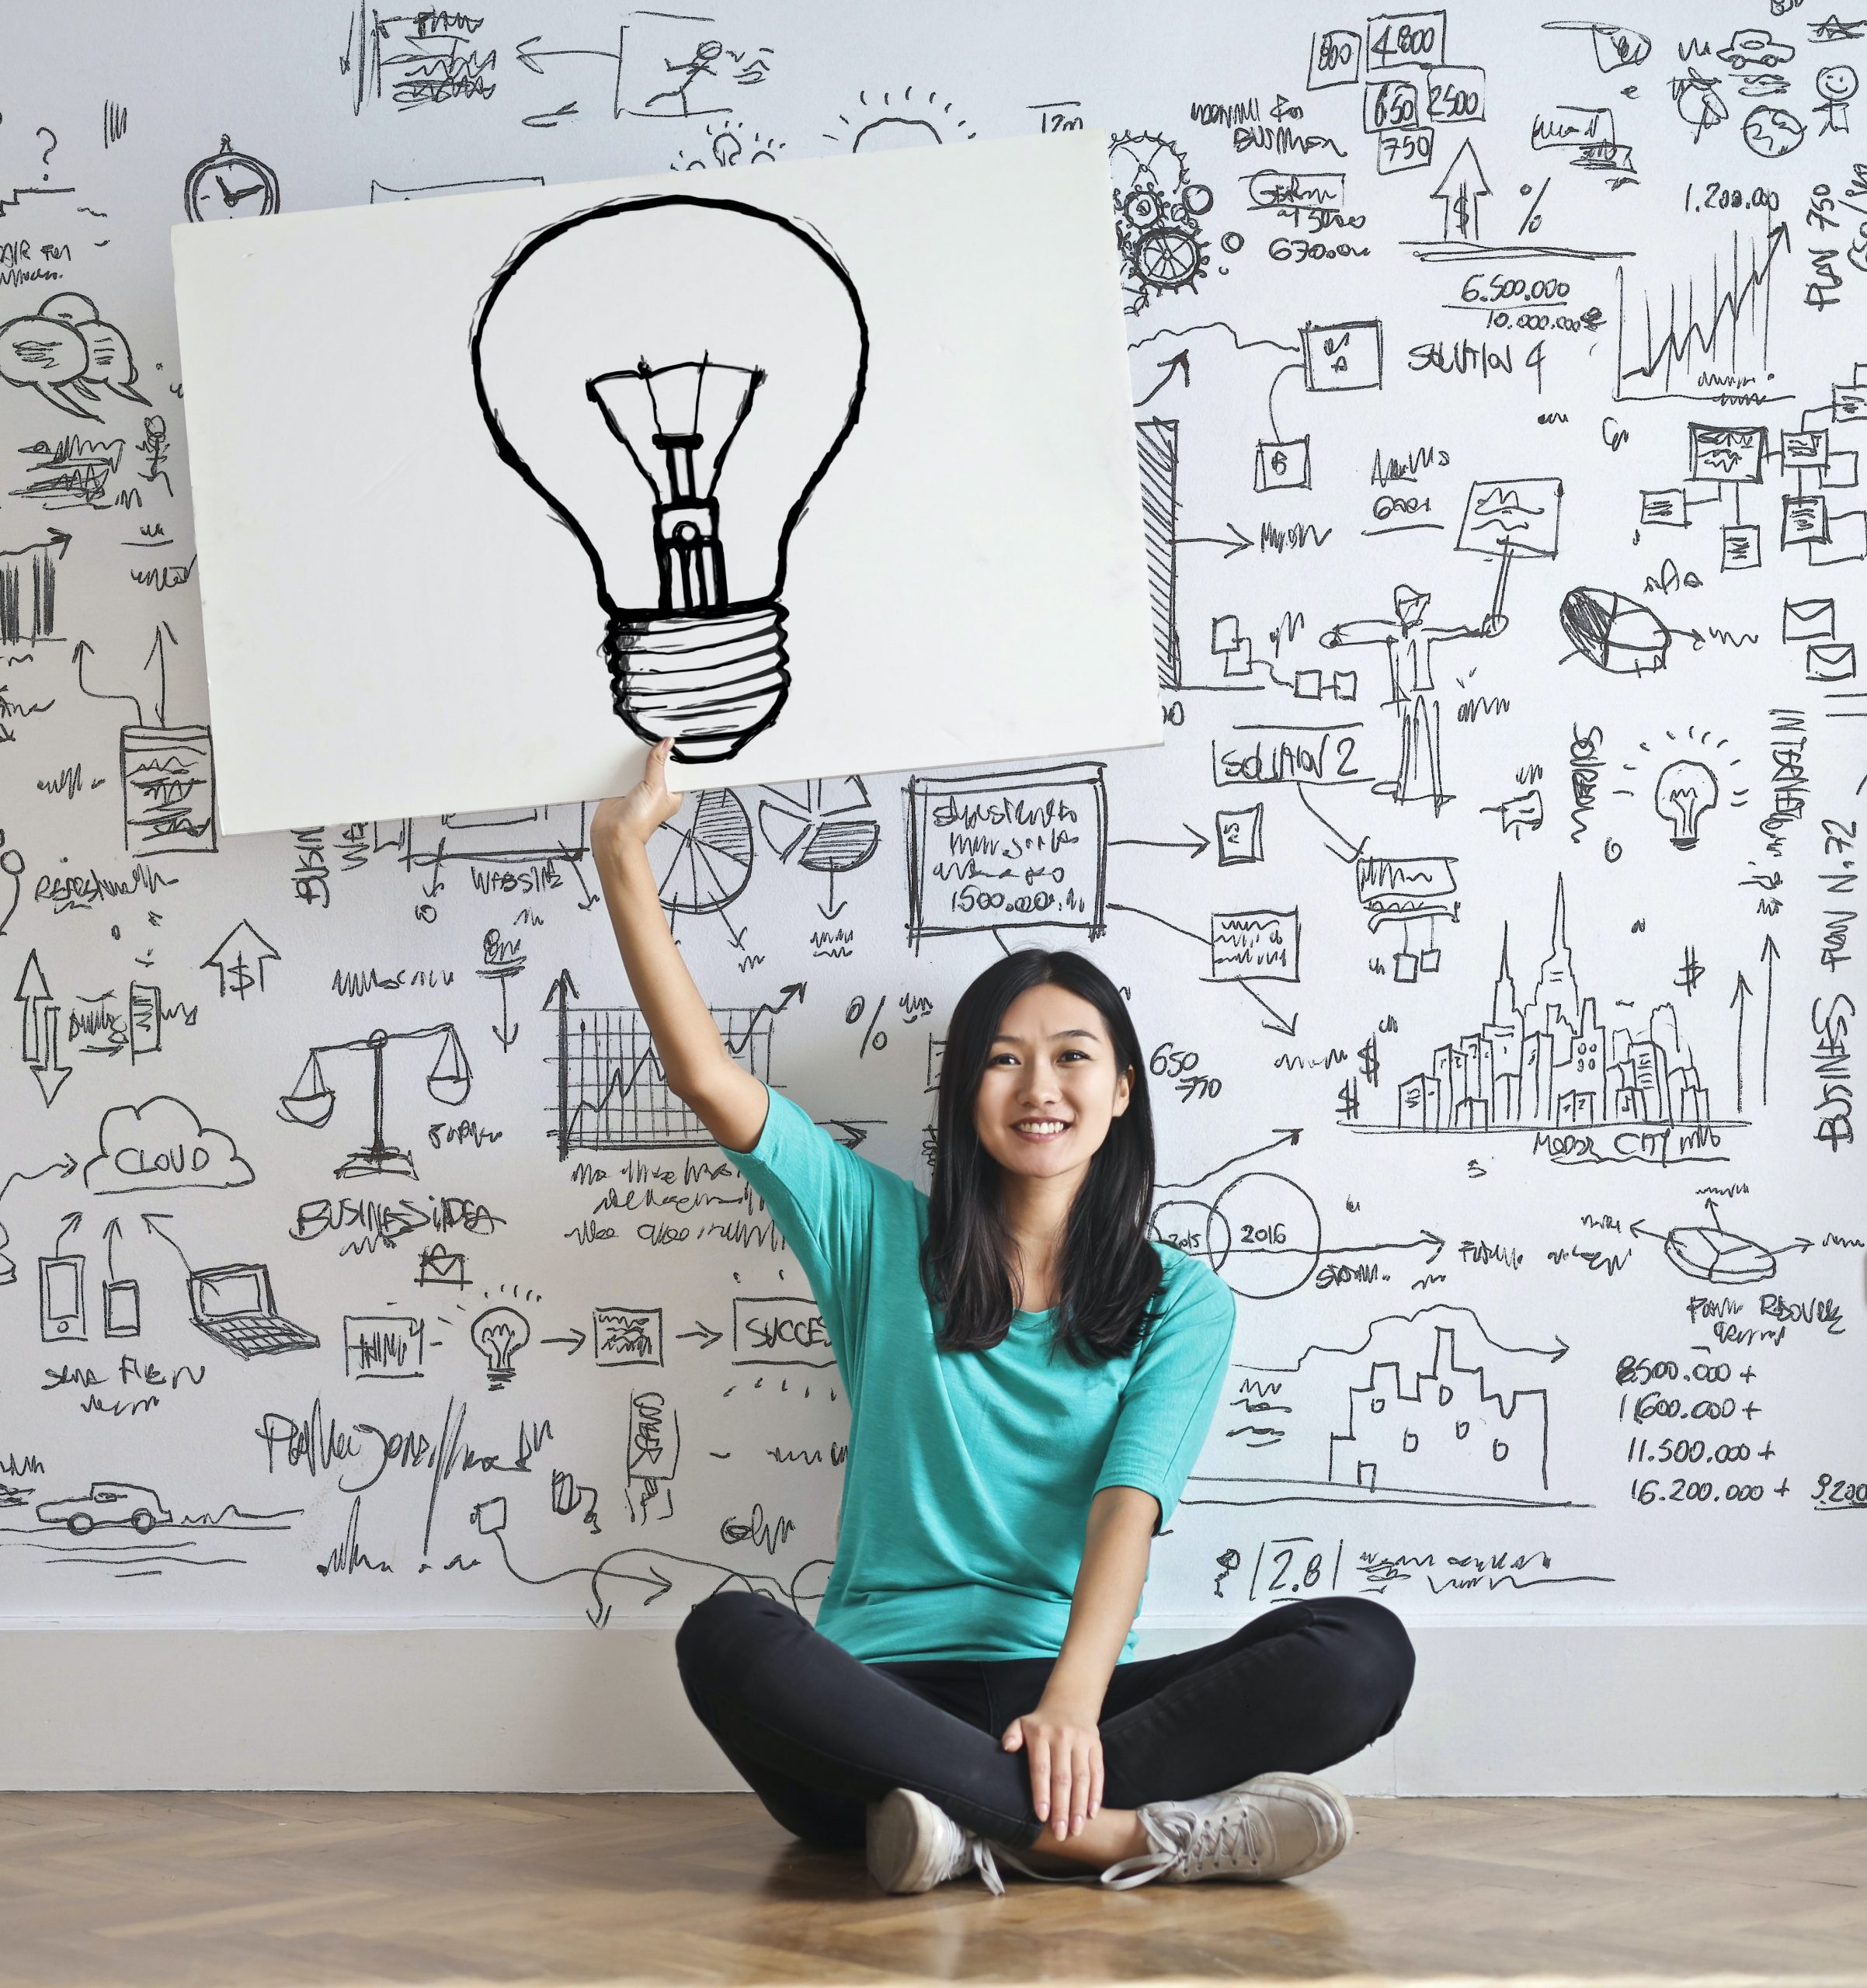 Young asian teen holding up sign with drawn on light bulb in front of why wall with drawings. Anxiety solutions don't need to take months. Solution-focused therapy in Illinois can help. Begin online therapy with a solution-focused therapist soon and see your children thrive.